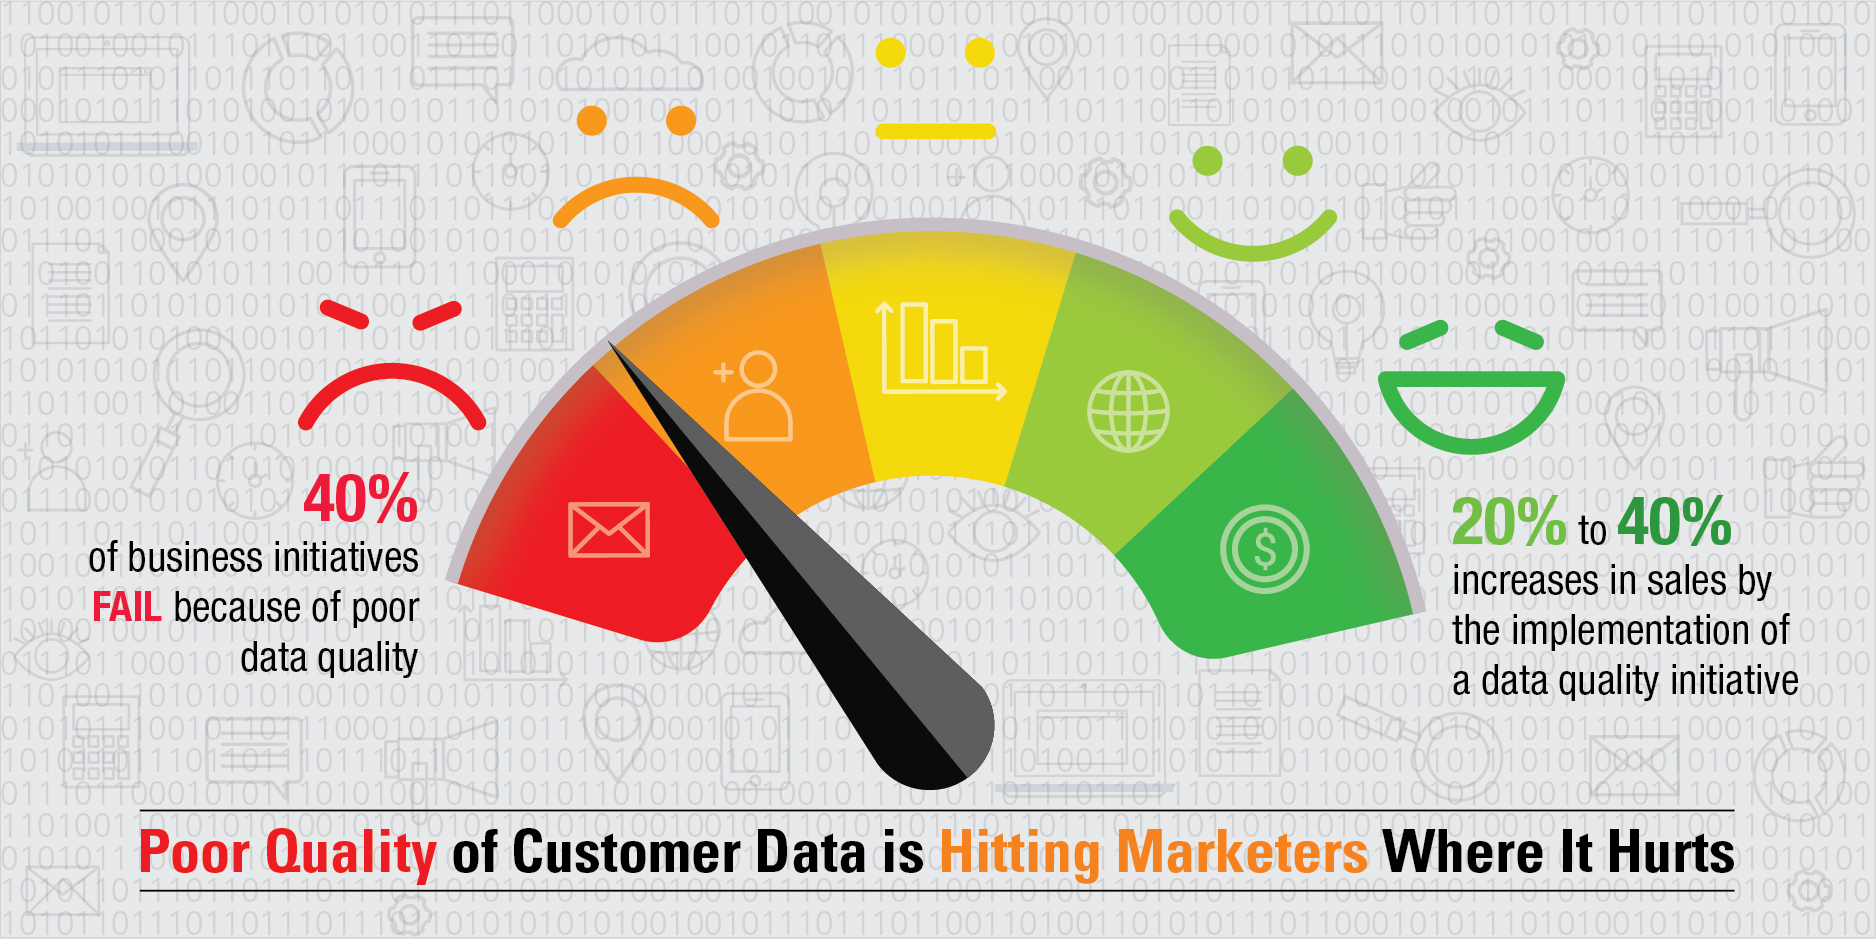 Poor Quality of Customer Data is Hitting Marketers Where It Hurts